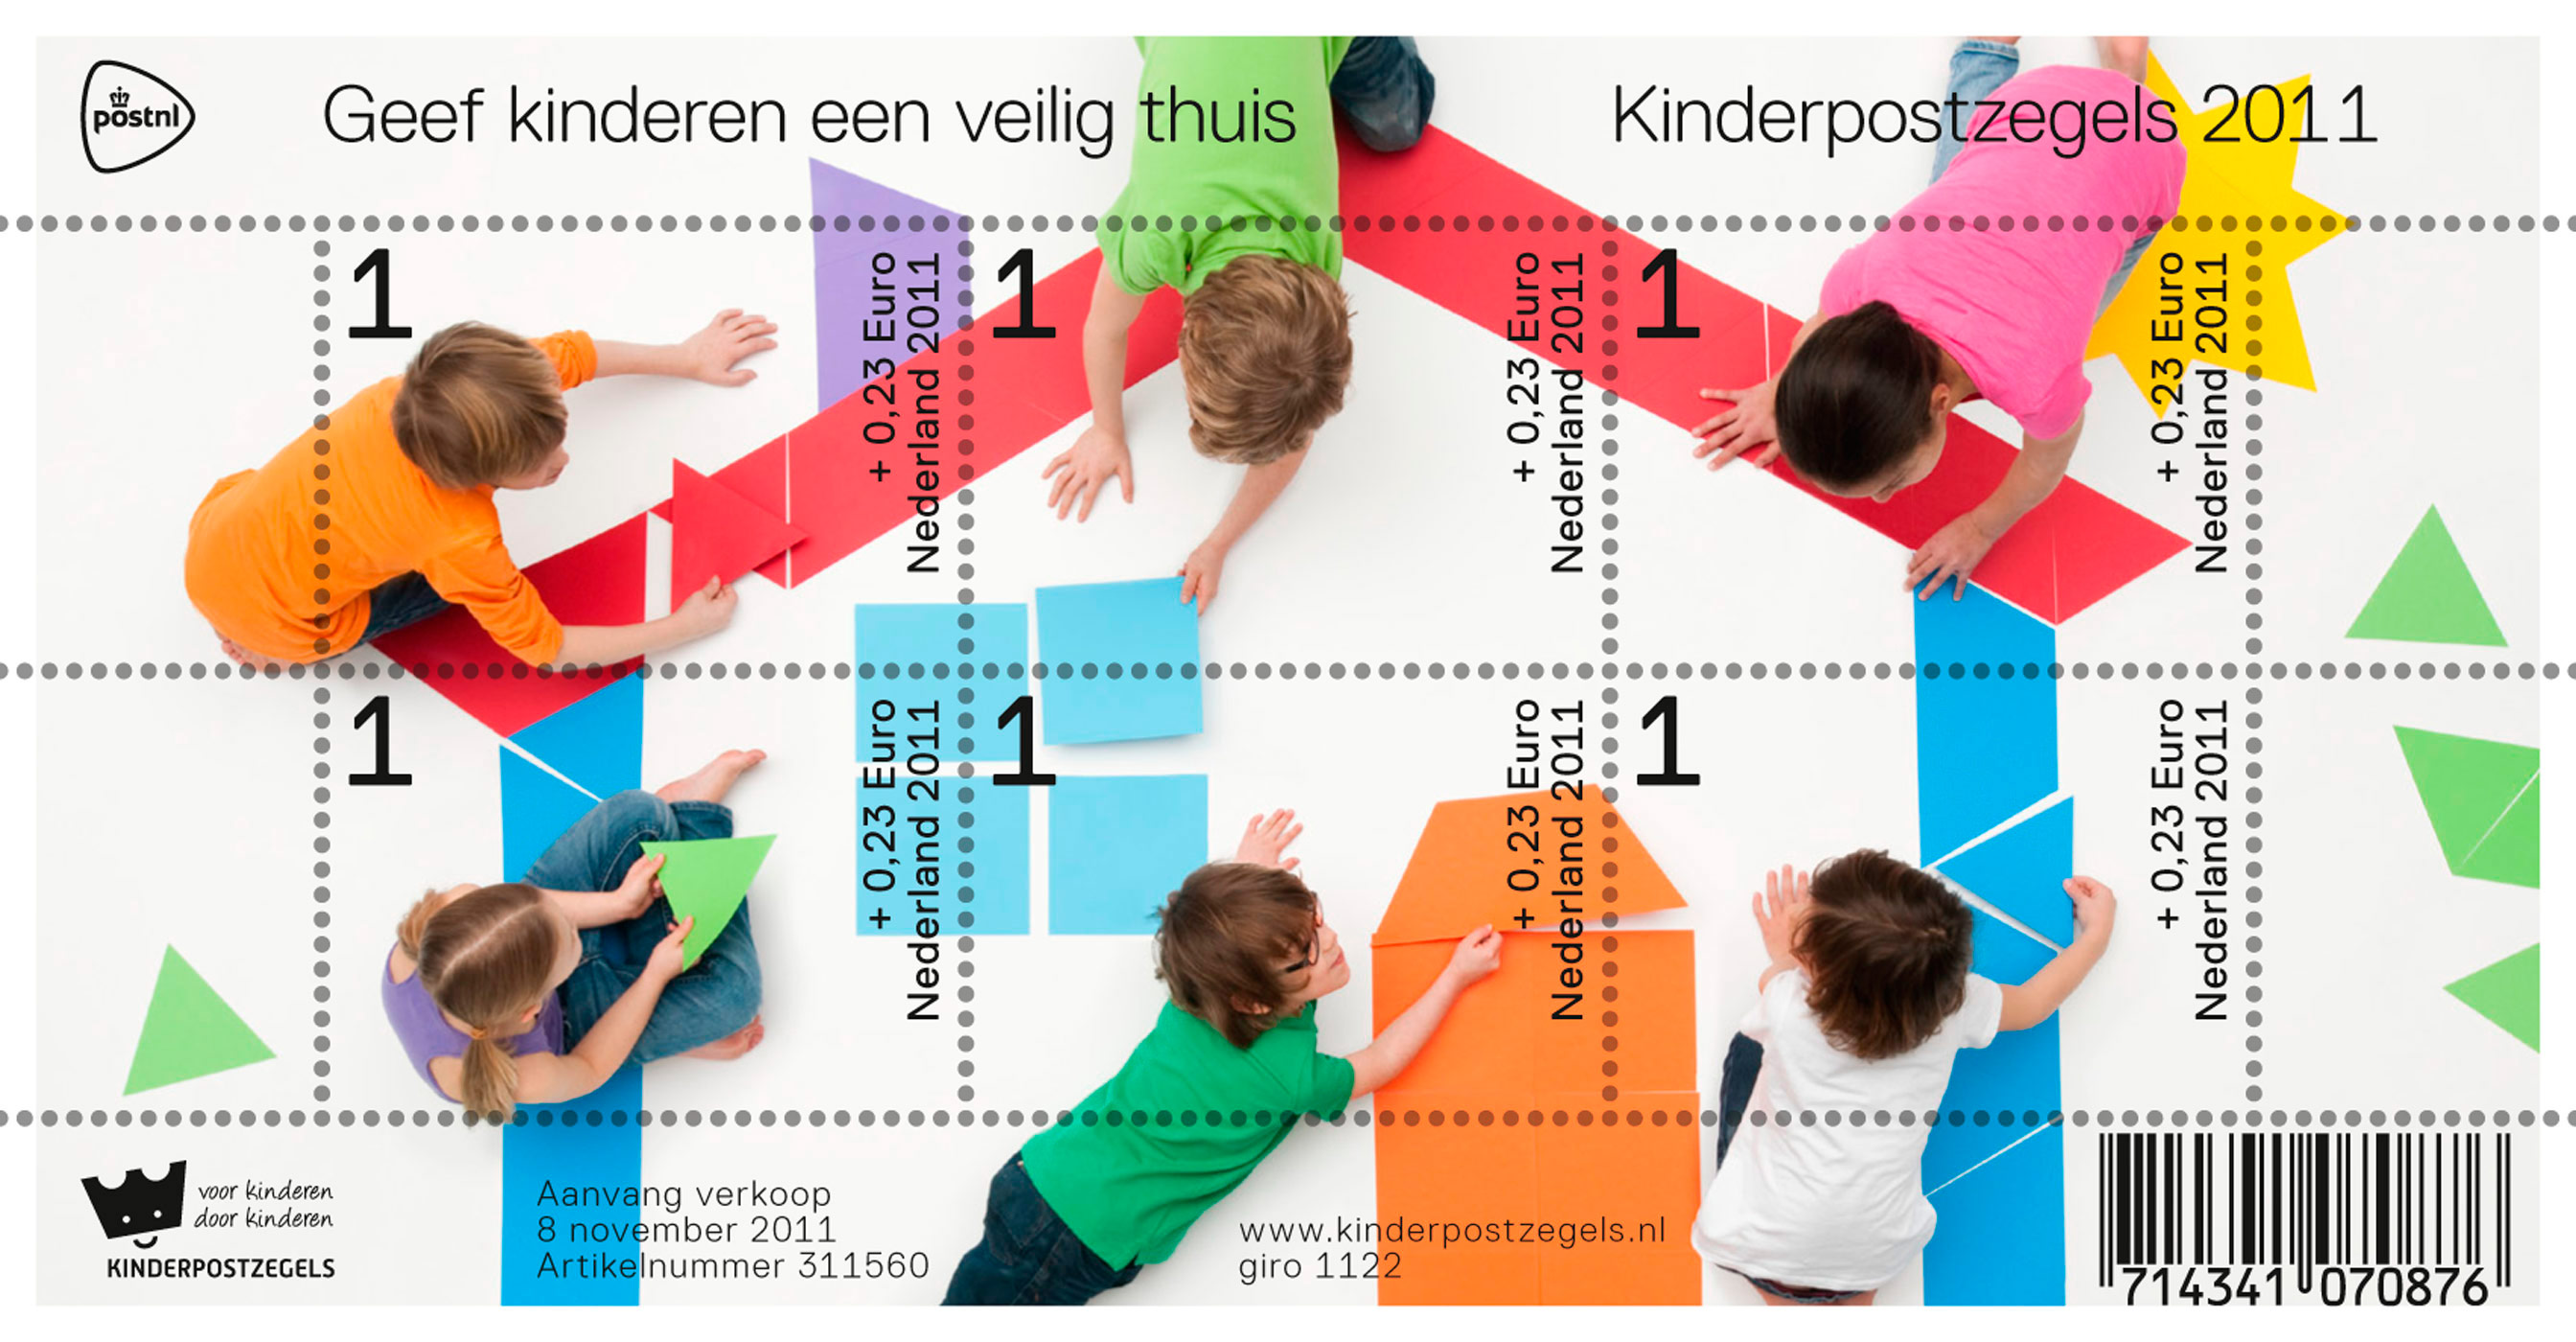 post nl, kinderpostzegels, graphic design